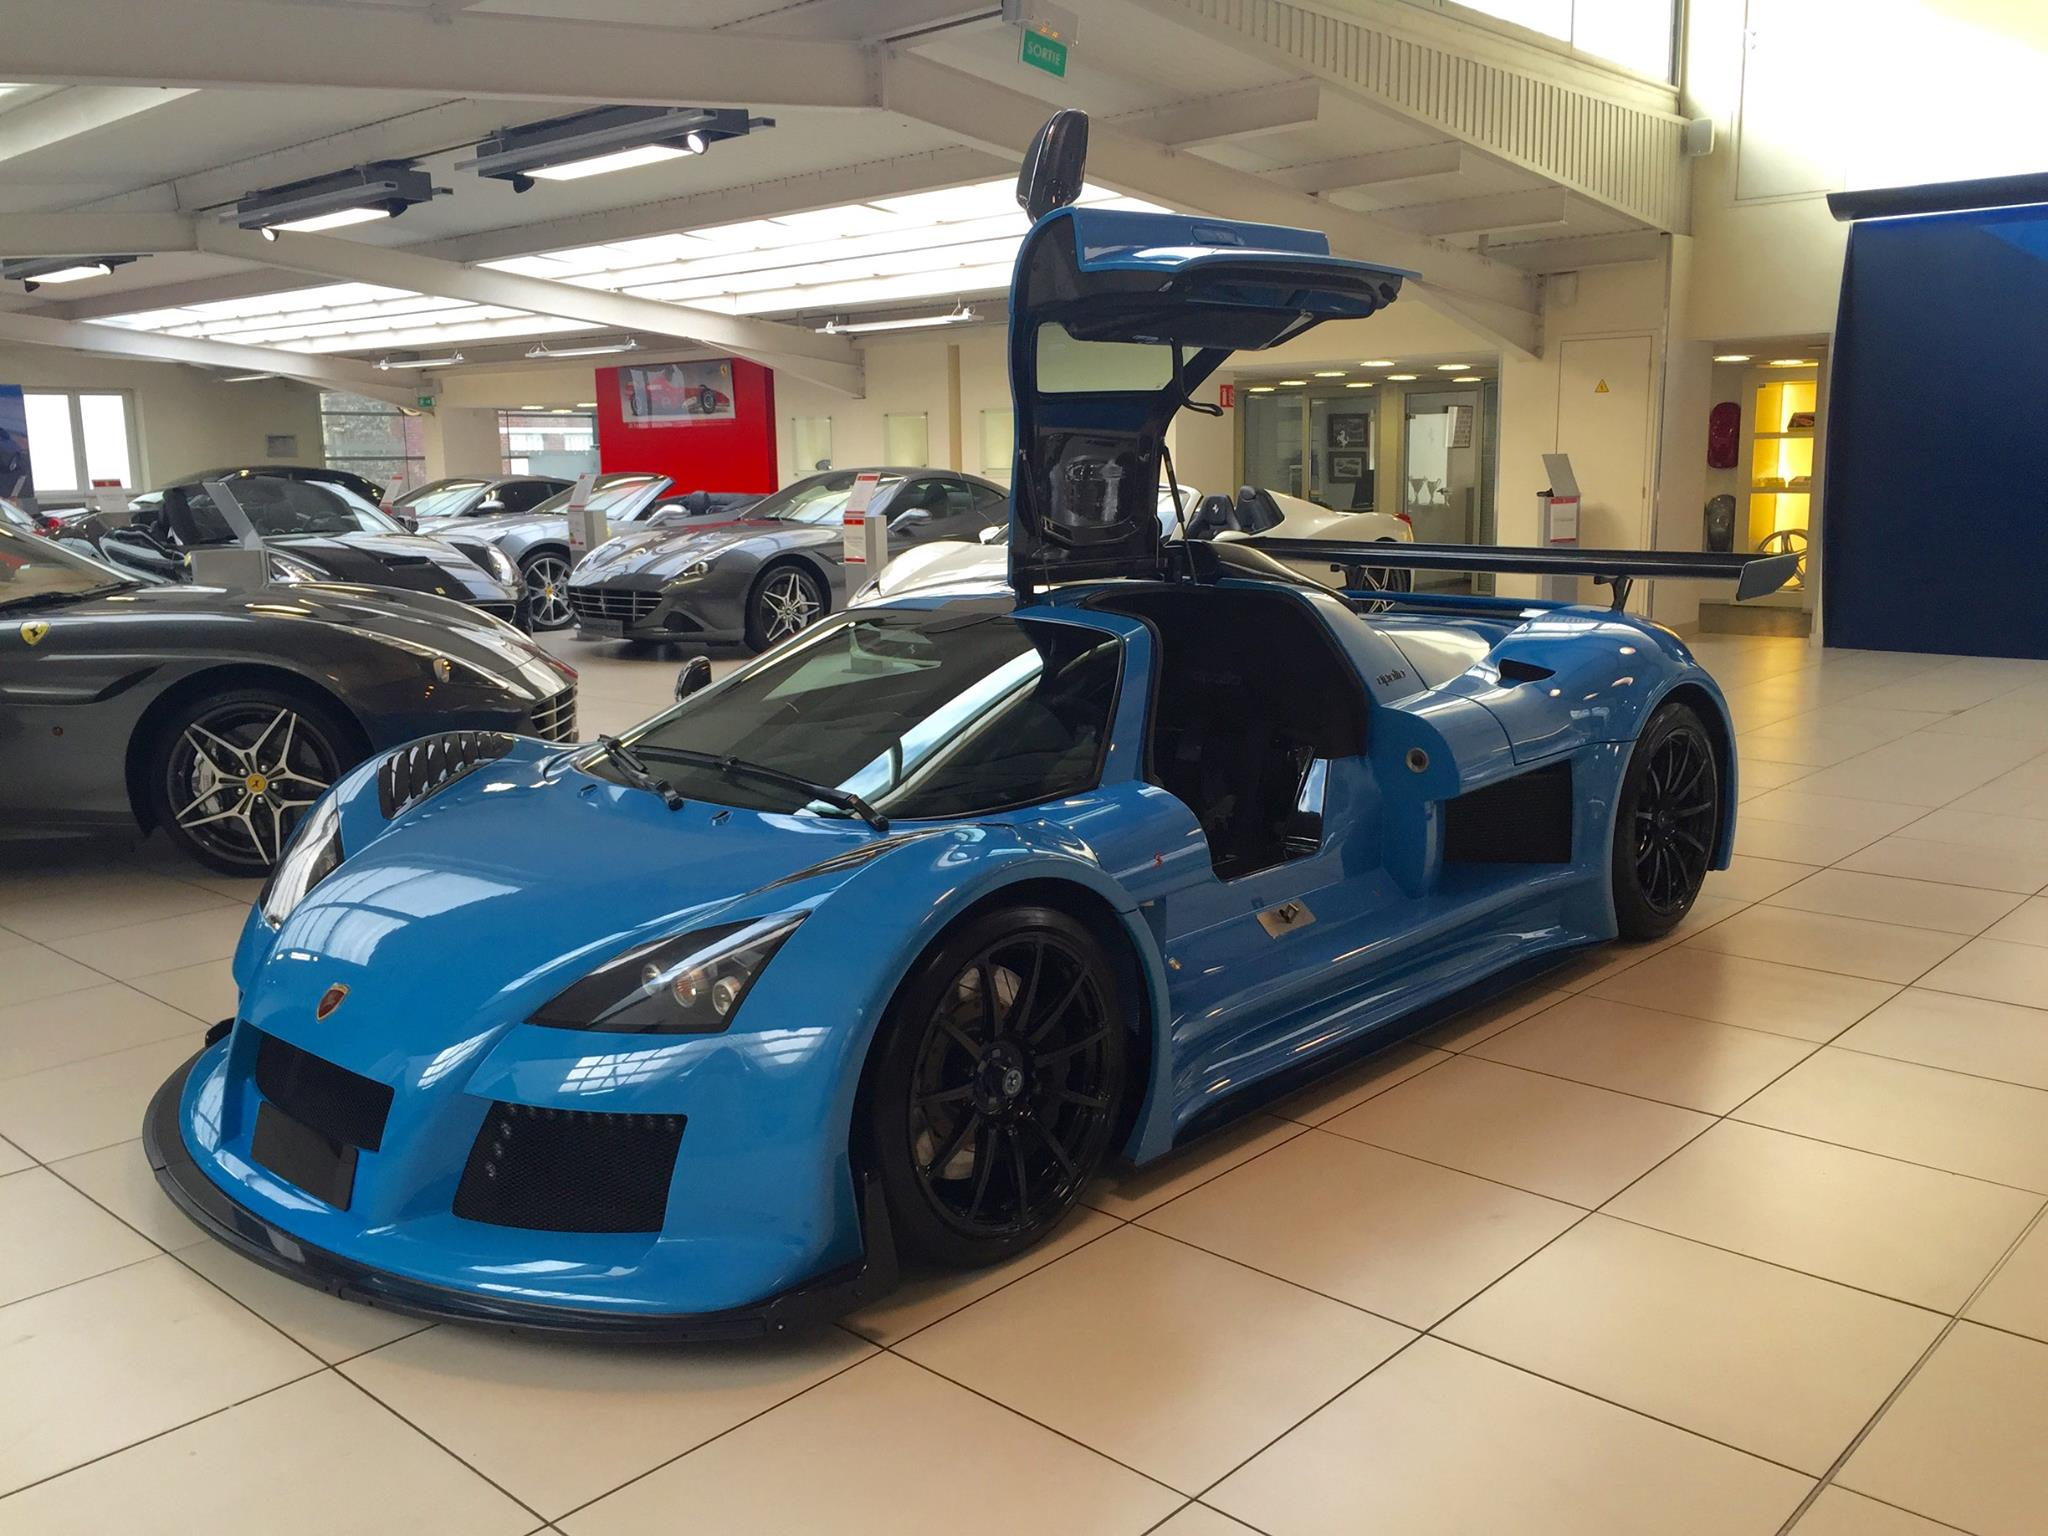 Blue Gumpert Apollo S For Sale in France - GTspirit